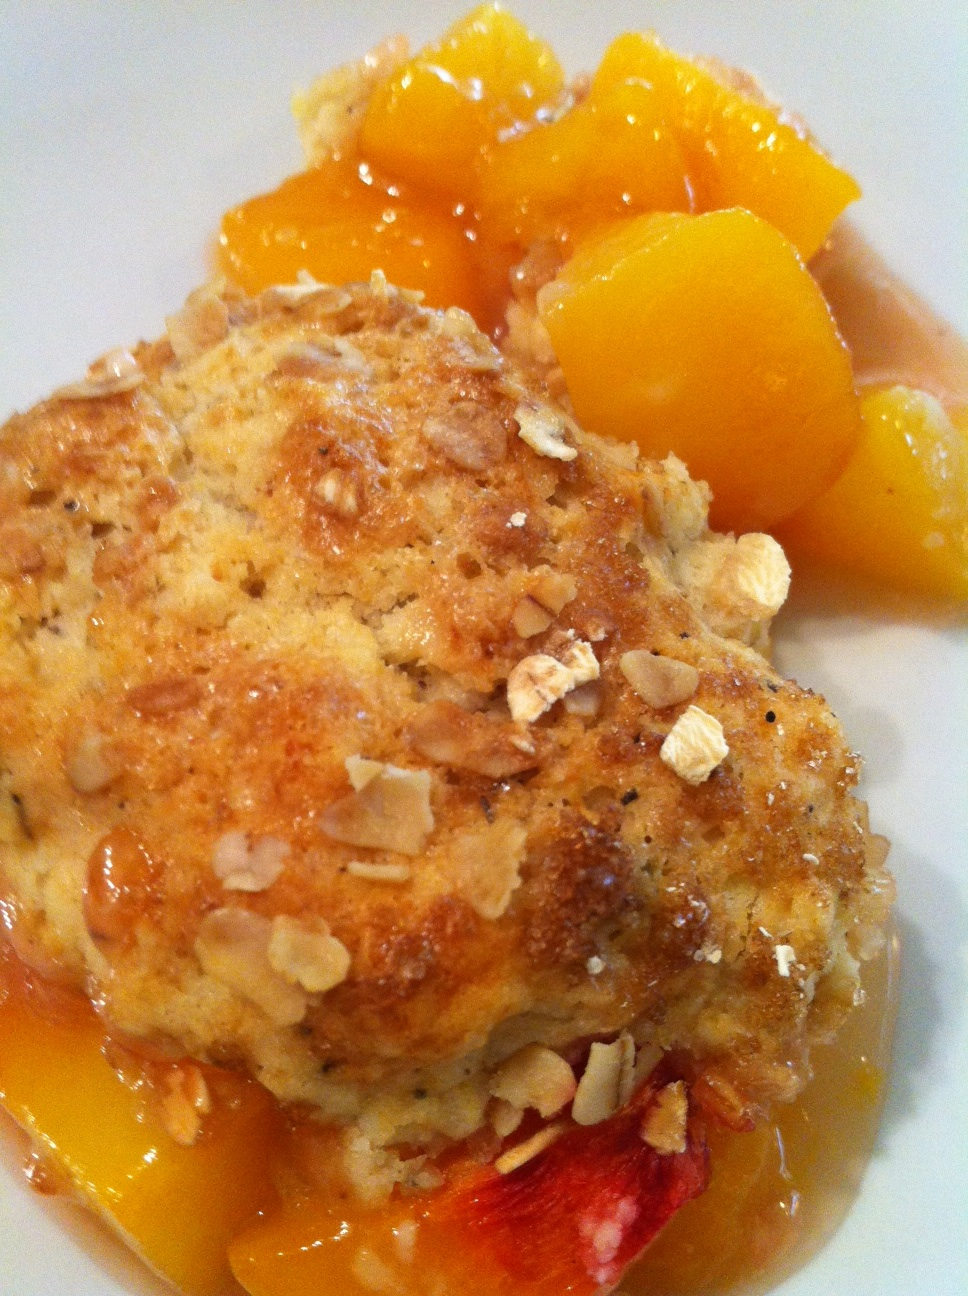 Published May 14 at 968 × 1296 in Episode 4: Lavender-Peach Cobbler